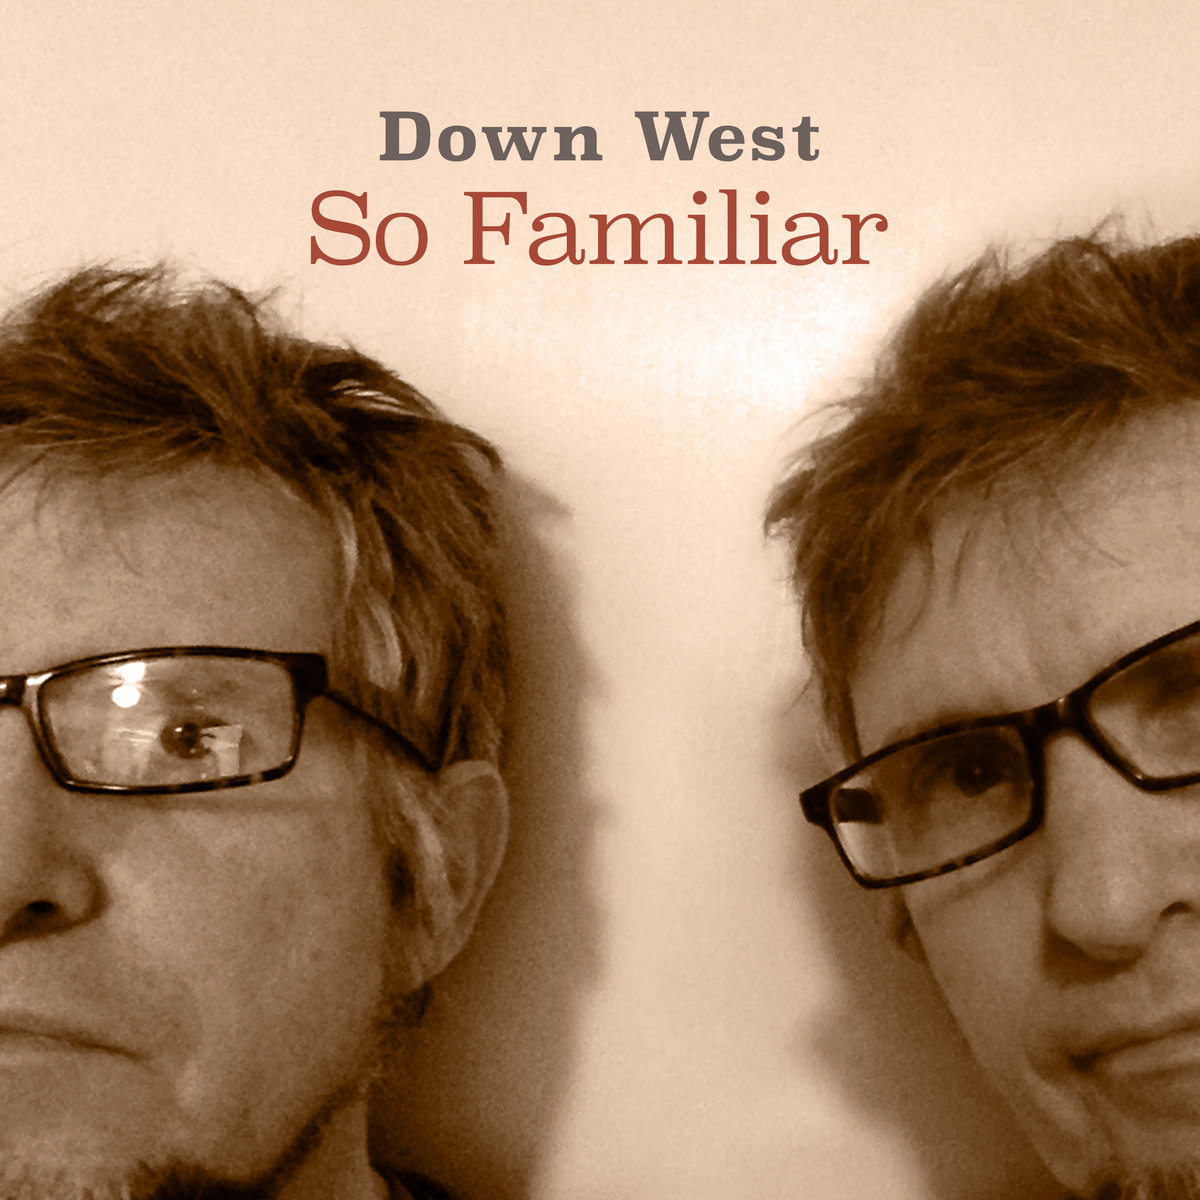 So Familiar by Down West